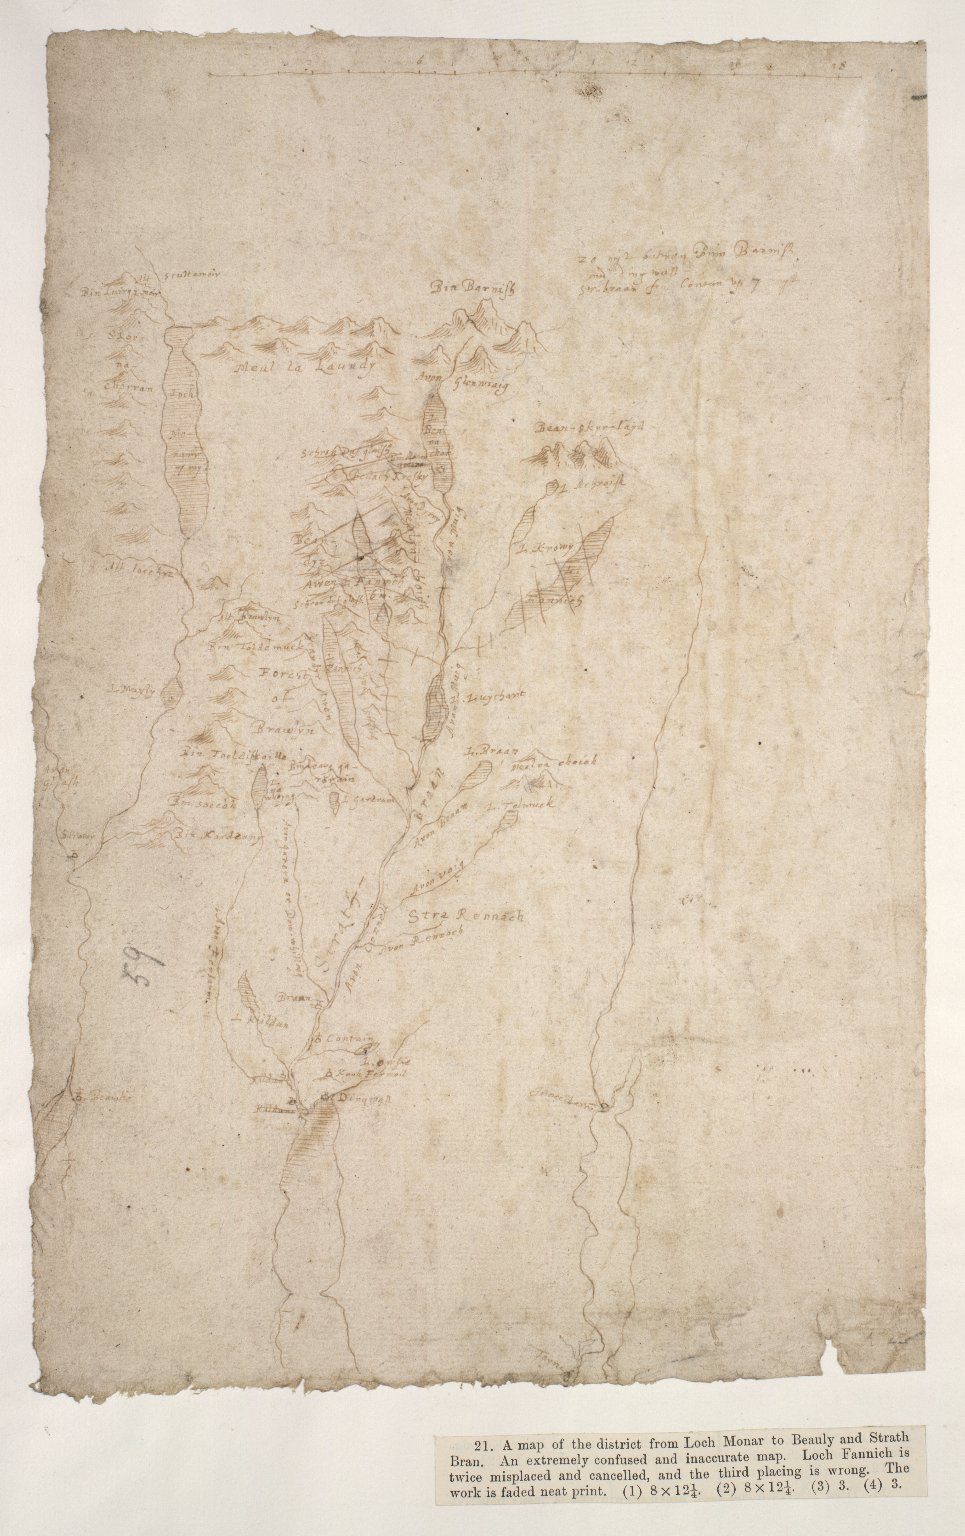 [Map of the district from Loch Monar to Beauly and Strath Bran] [1 of 1]